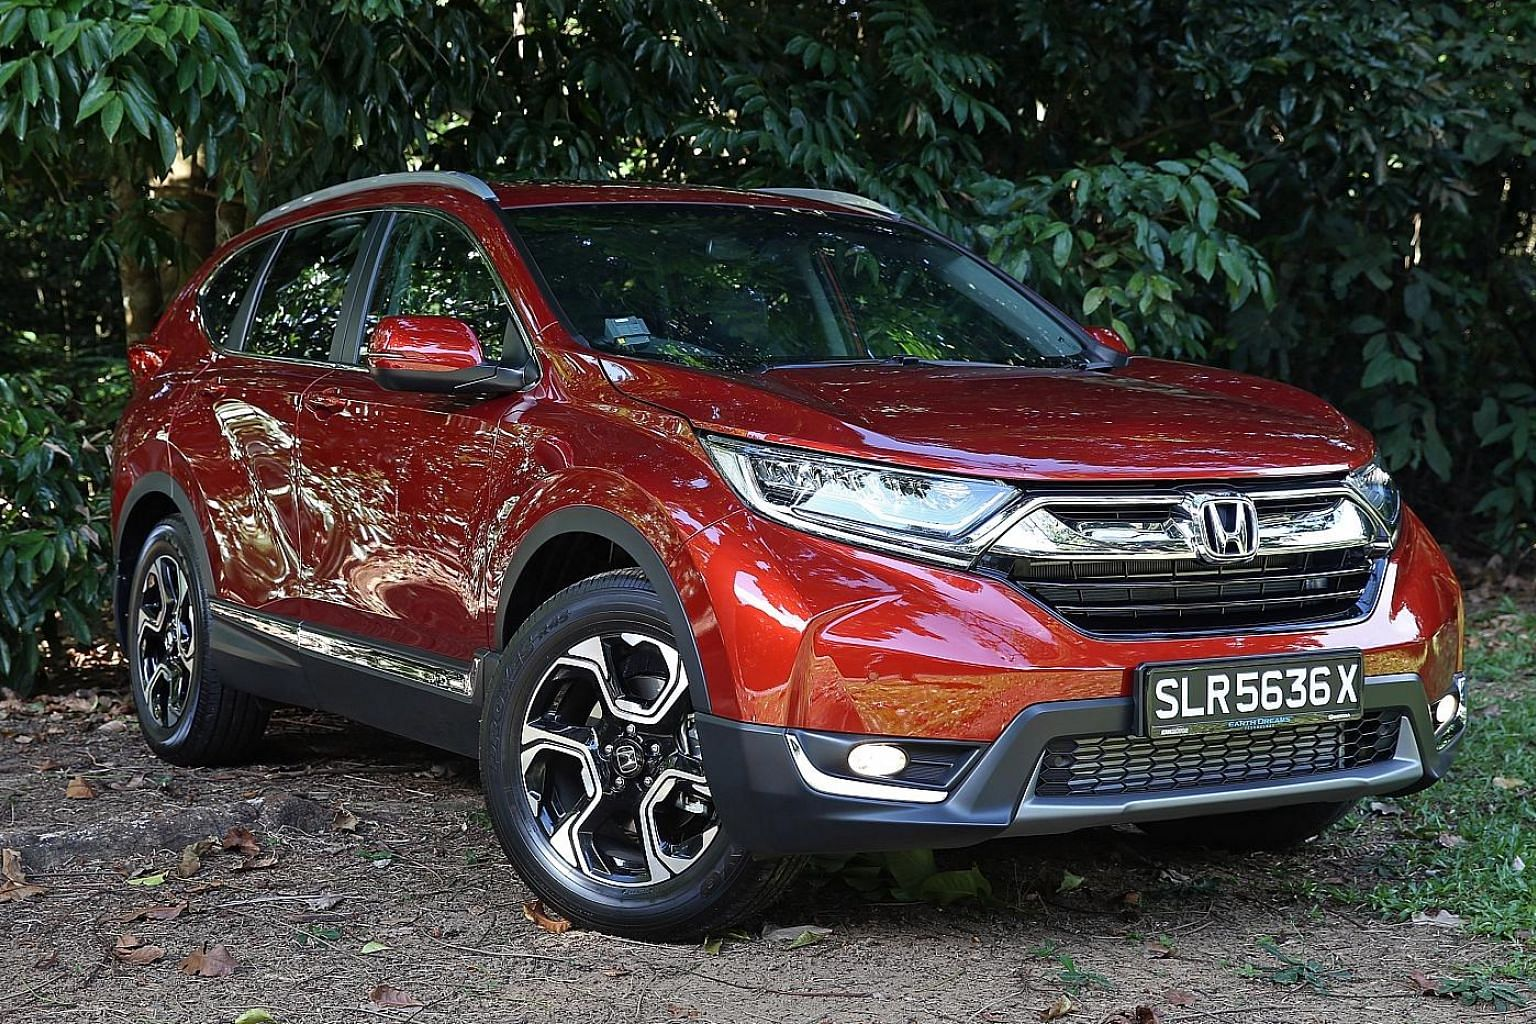 The new Honda CR-V is better-looking than its predecessor and has a sizeable cargo area when the third-row seats are folded flat.